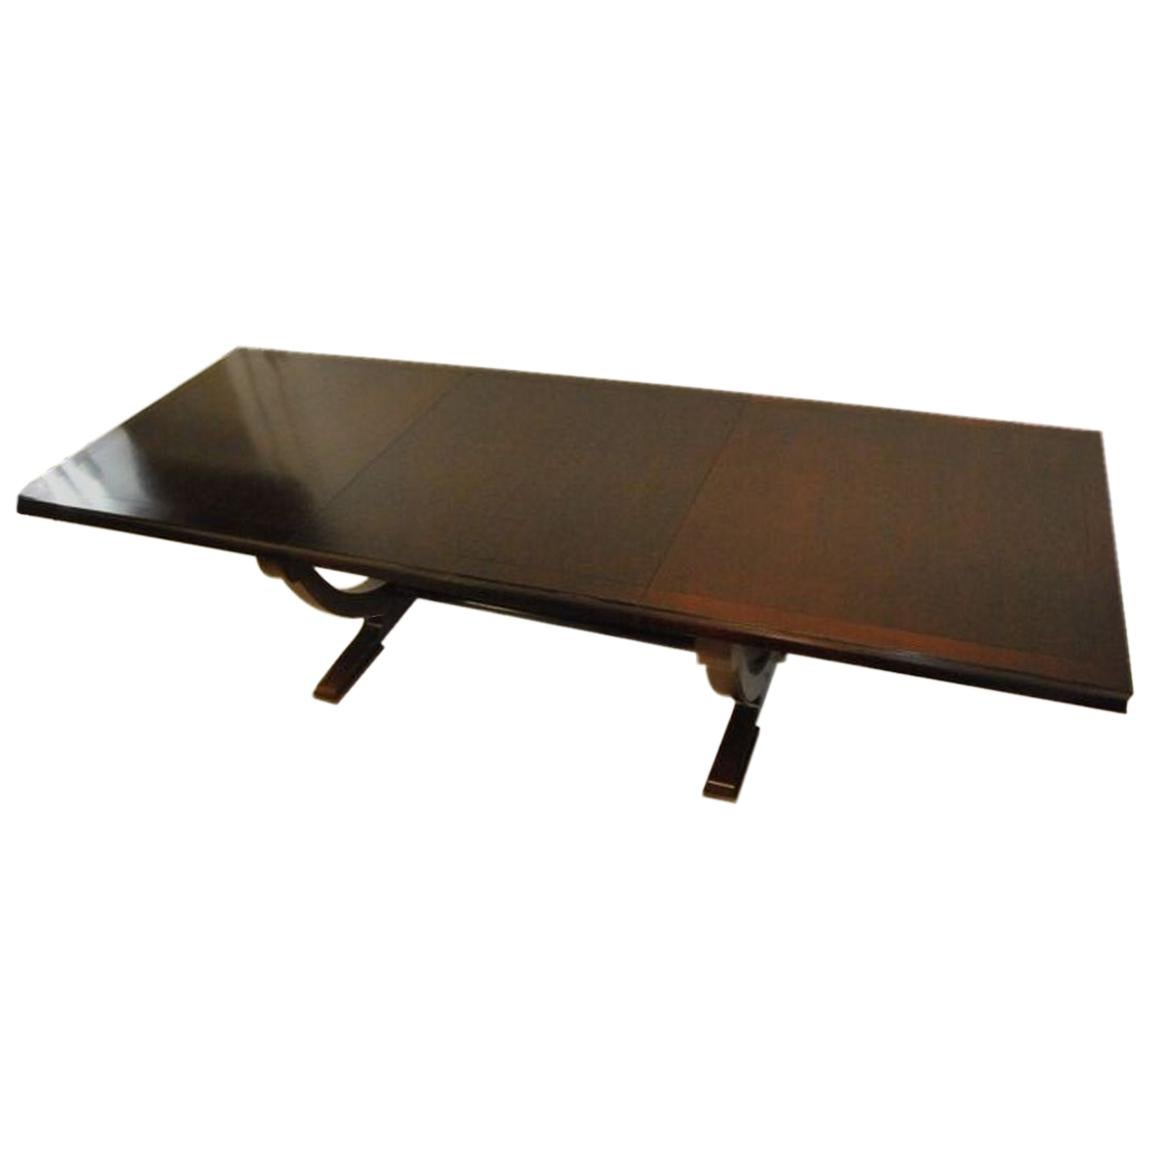 Mahogany Rectangle Dining Room Table By Barbara Barry For Baker Furniture